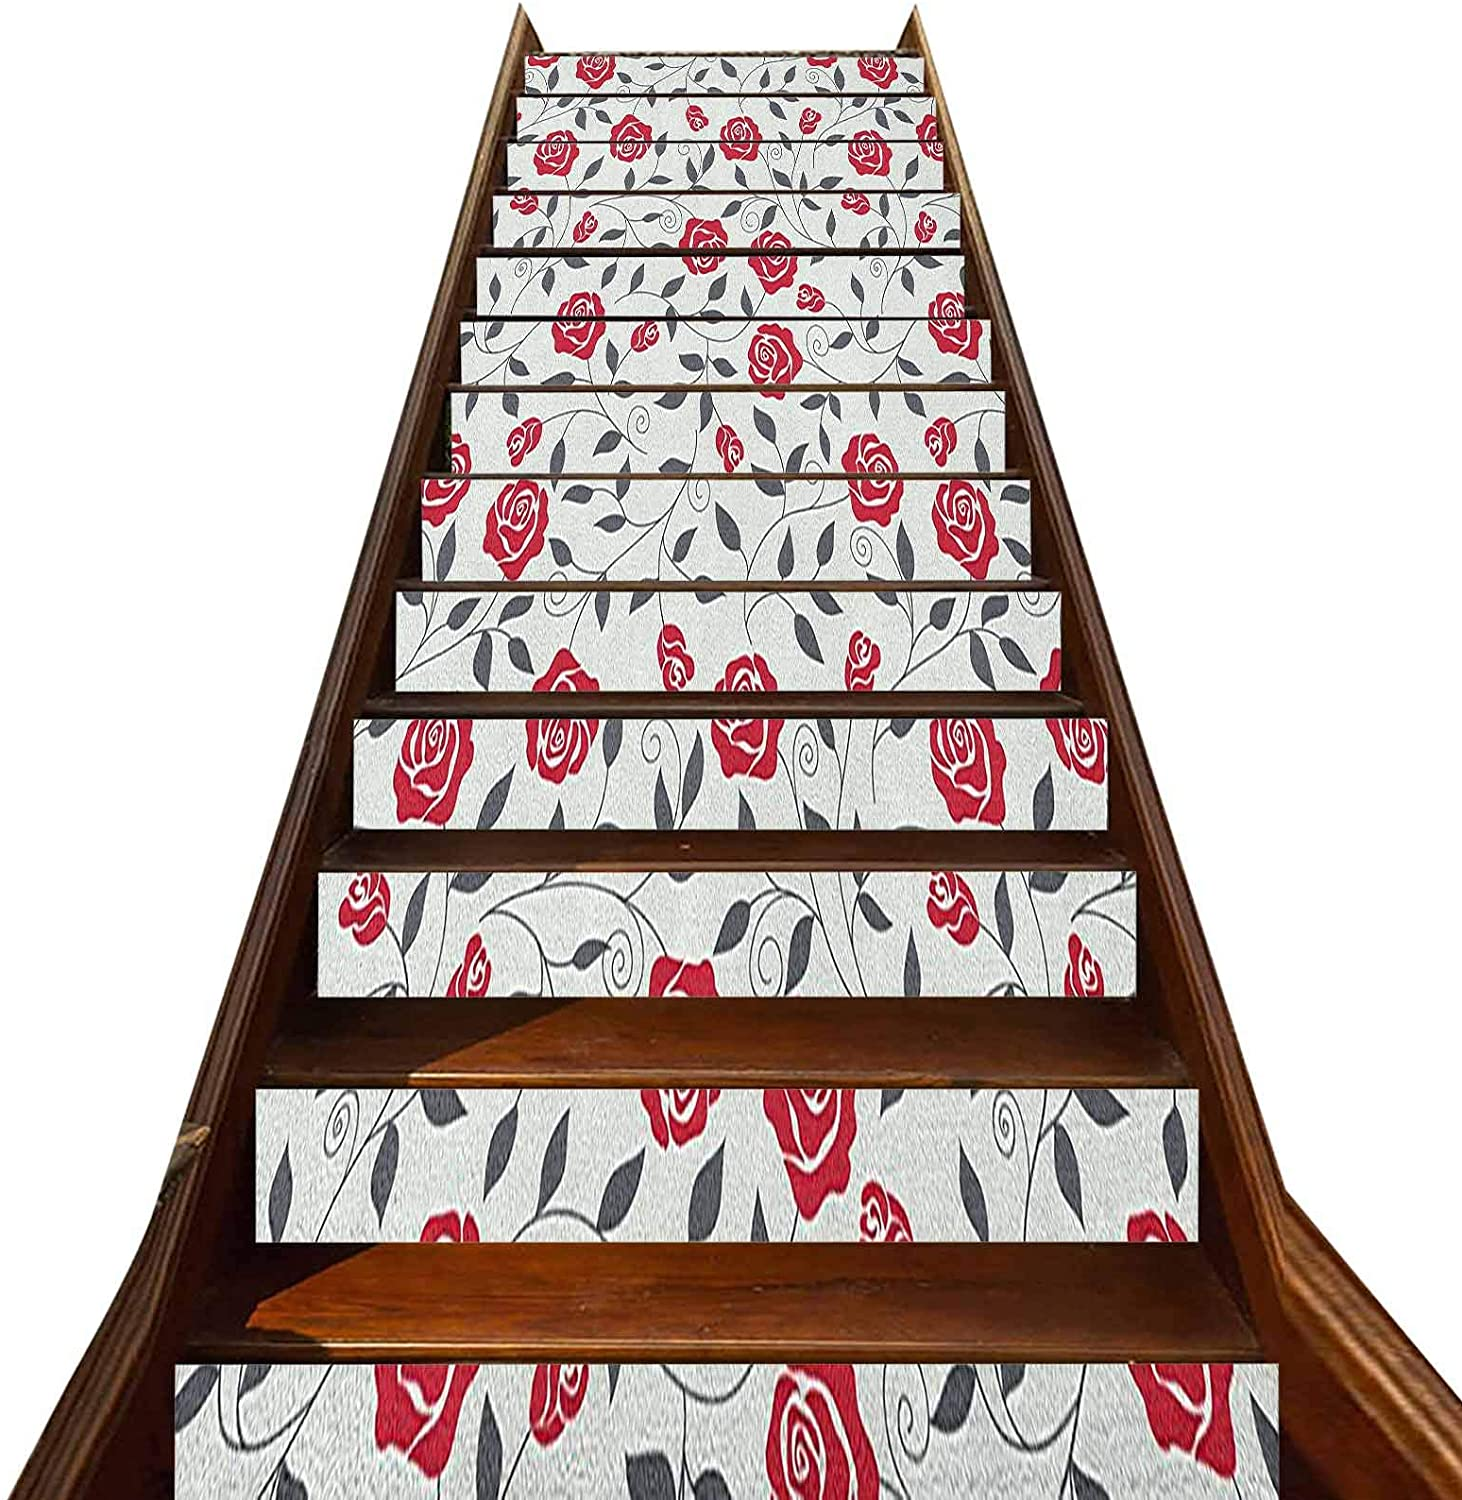 3D Rose Stair Stickers Decals-13Pcs/Set,Abstract Silhouettes Stylized Gardening Bedding Plants Curly Stems Swirls Pattern Staircase Stickers Stairway Decal Wallpaper,for Stair Sticker Home Decor